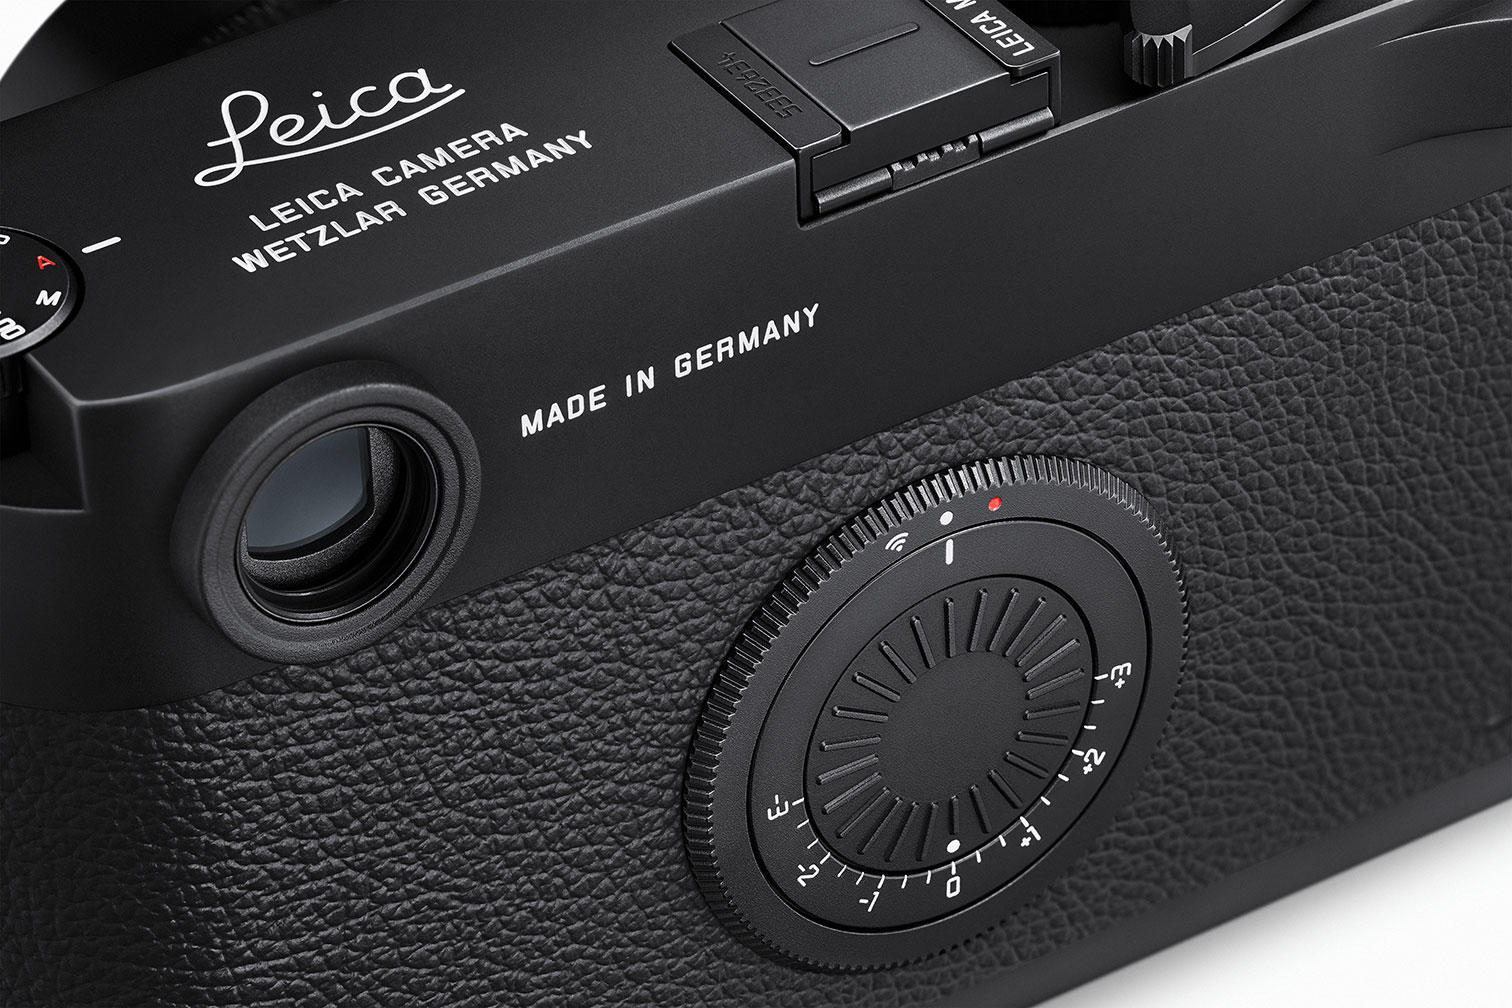 leica m10-d exposure compensation settings dial